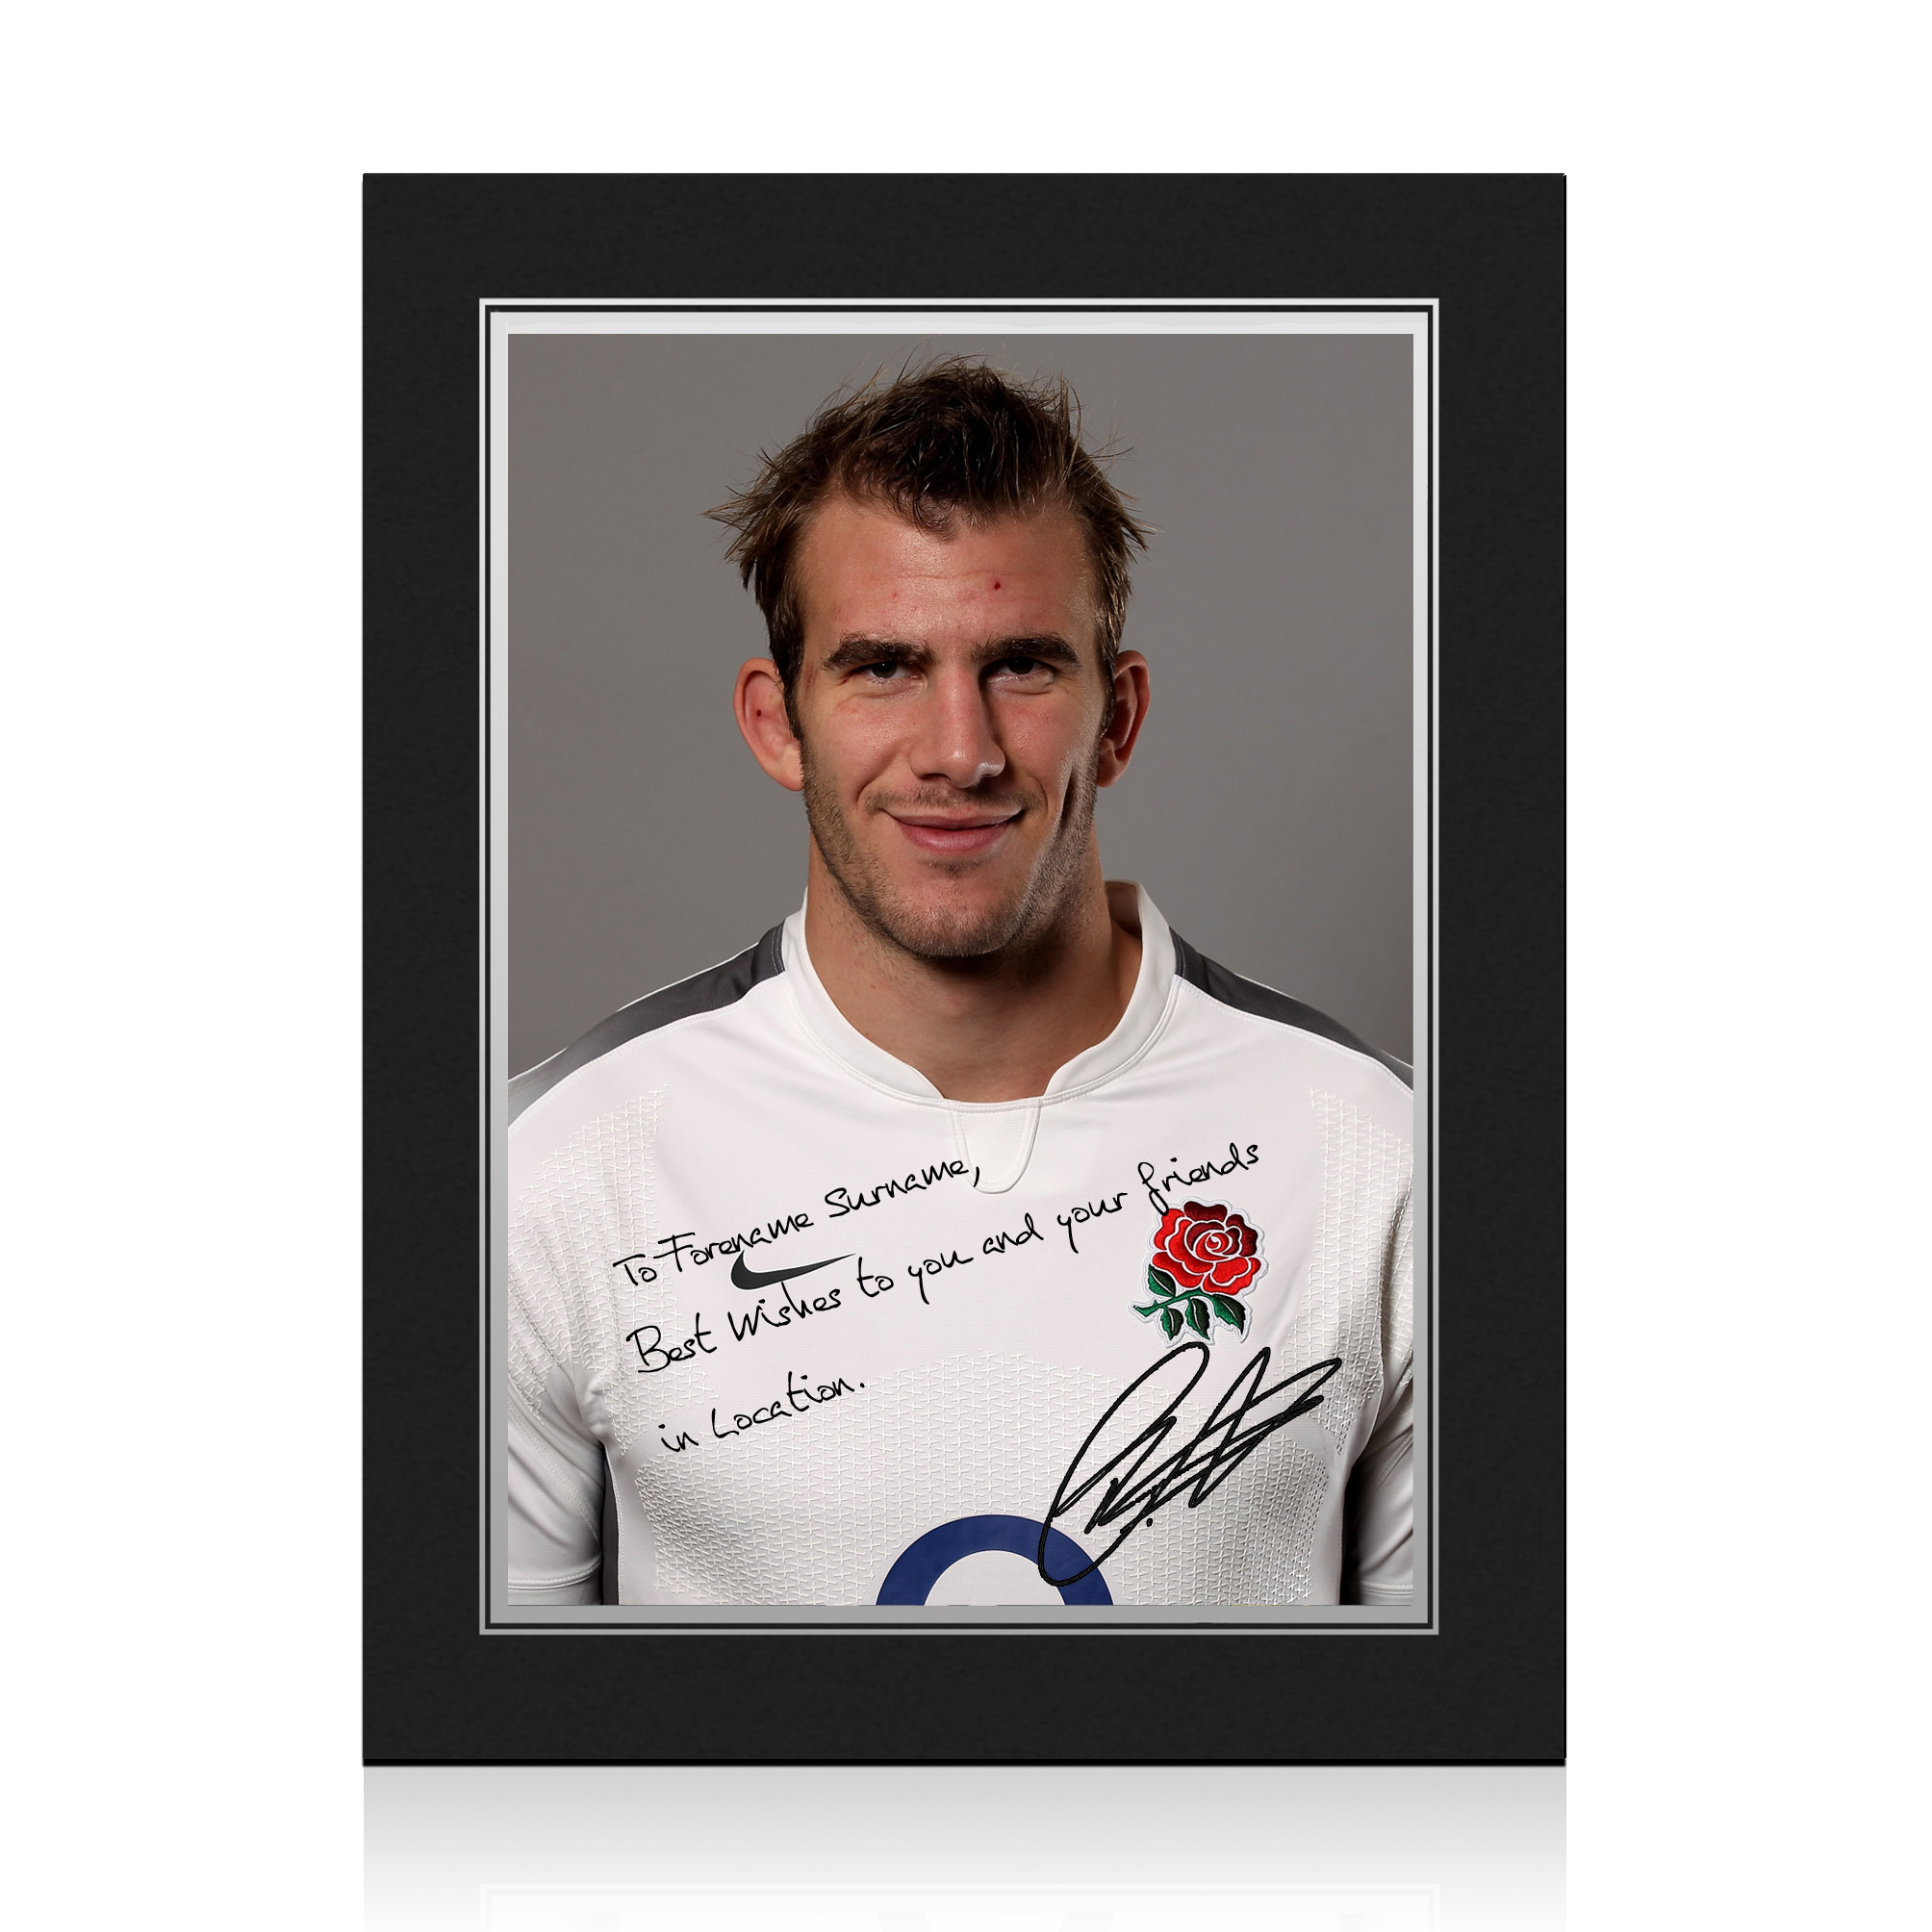 England Rugby Personalised Signature Print in Presentation Folder - Croft